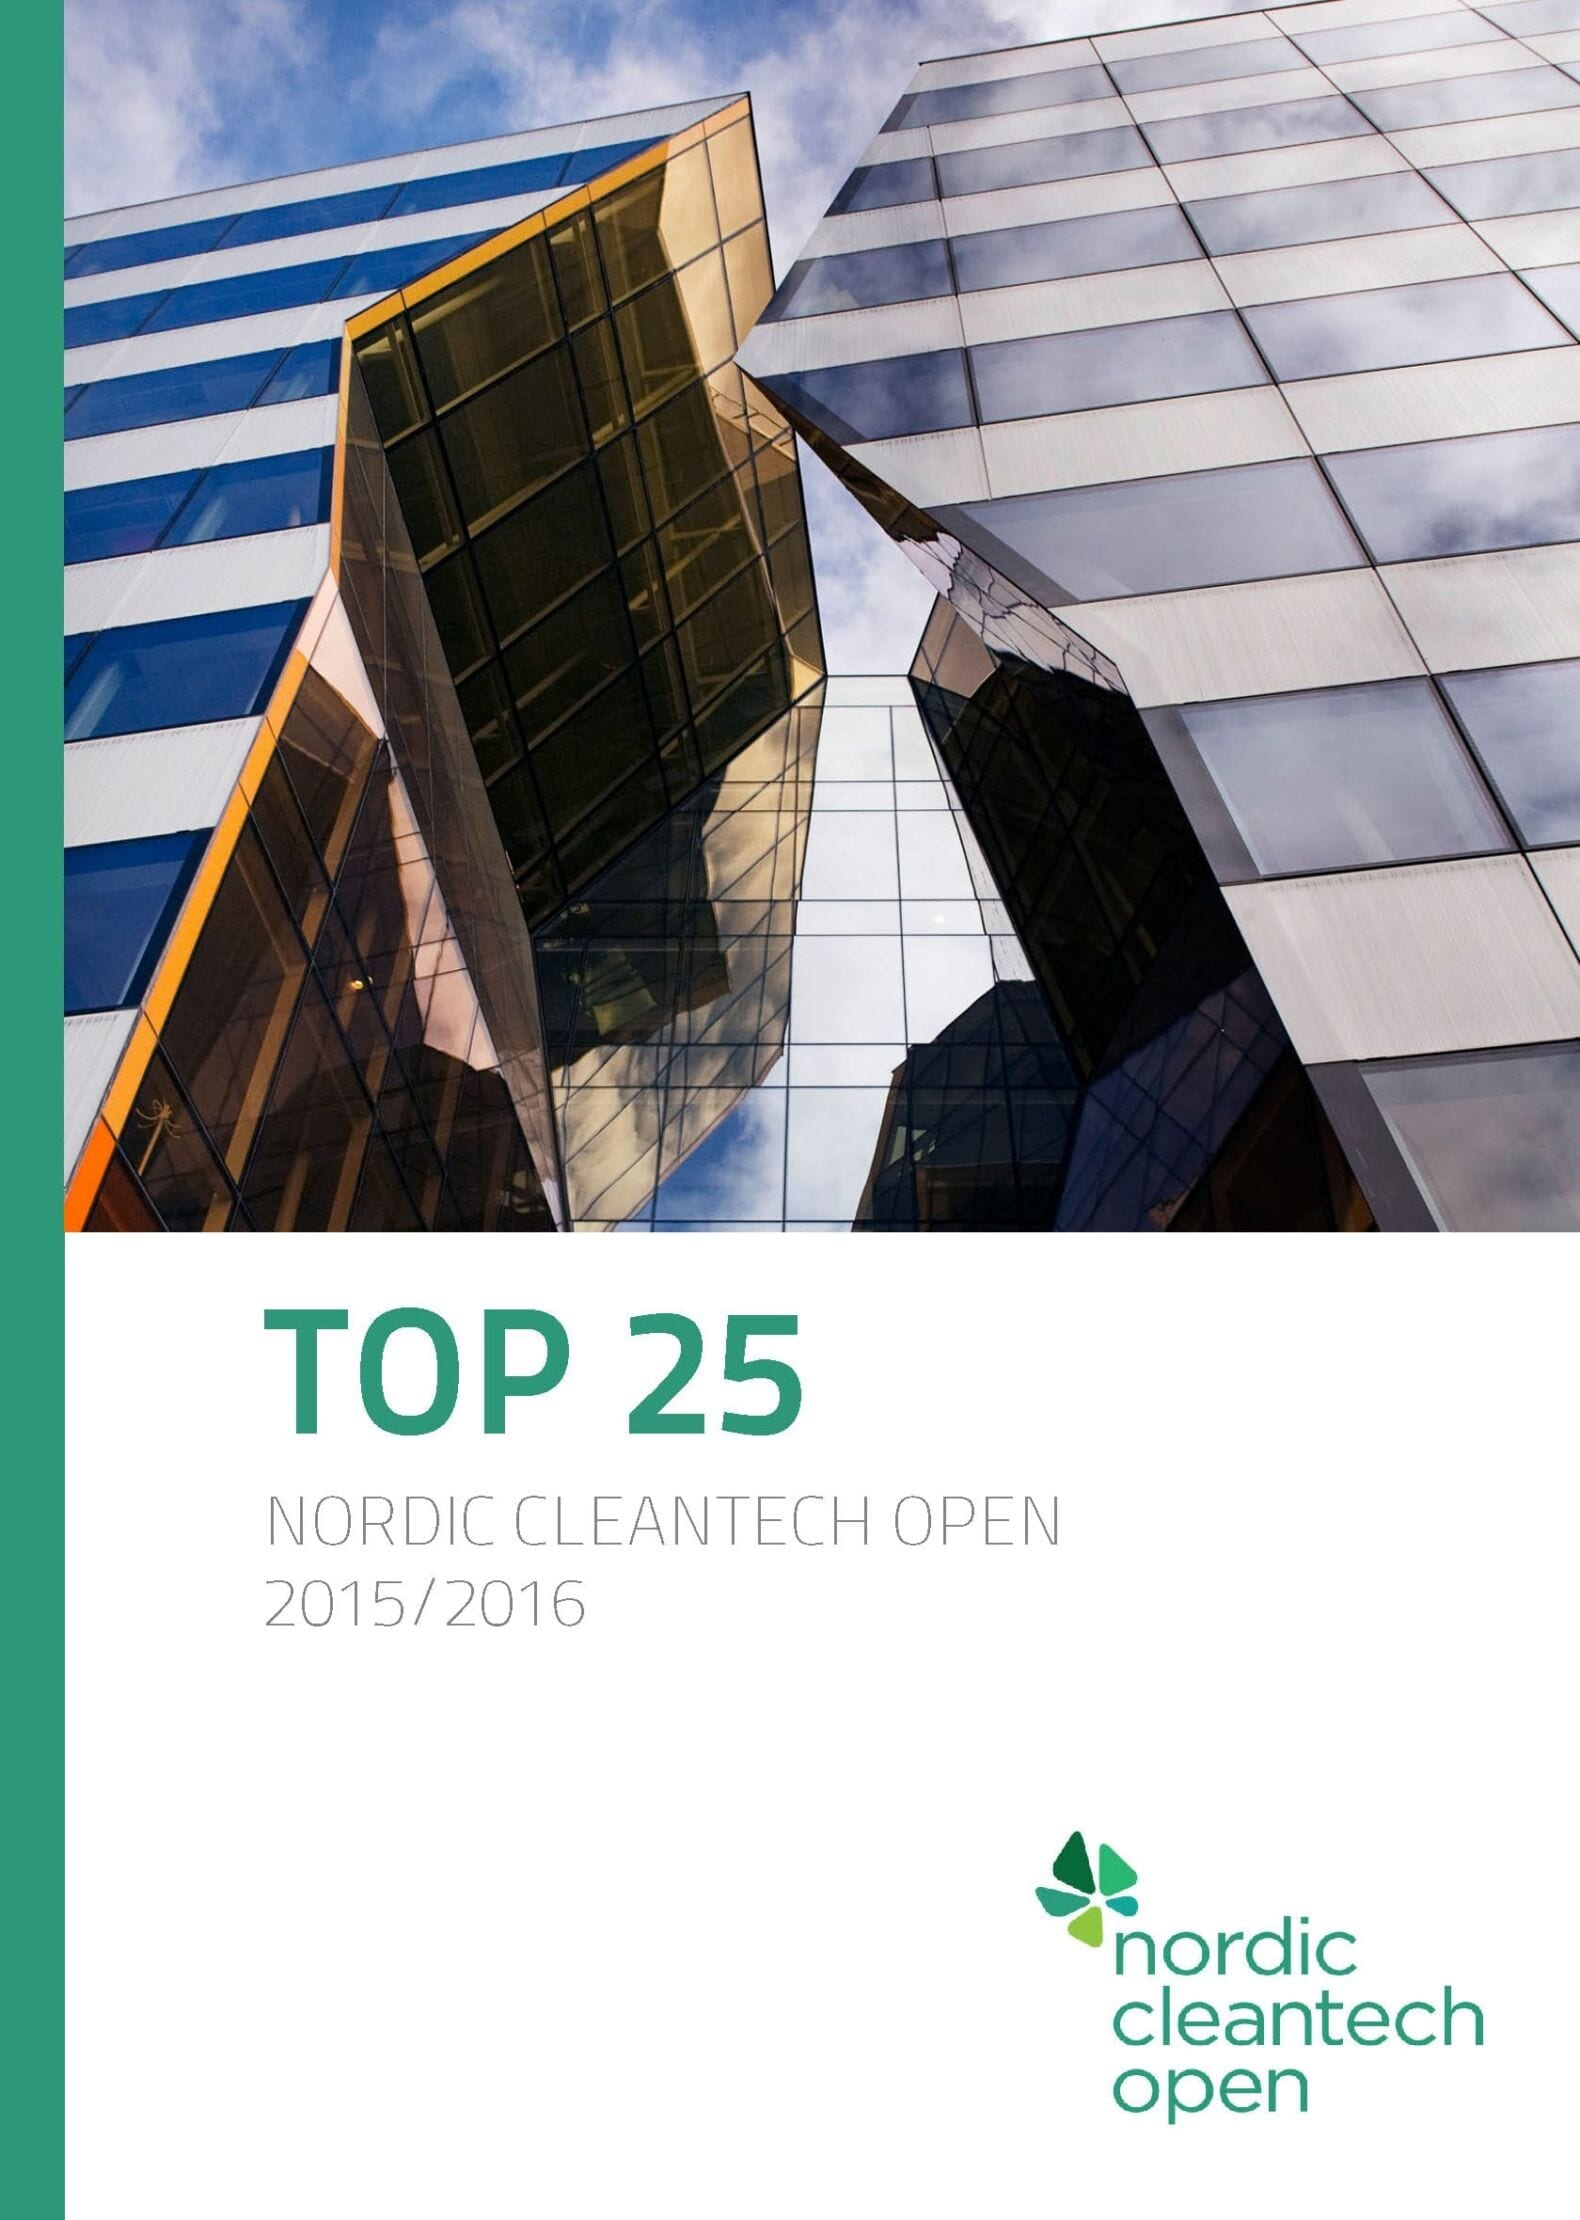 Top 25 Reports - Cycle 2015/16